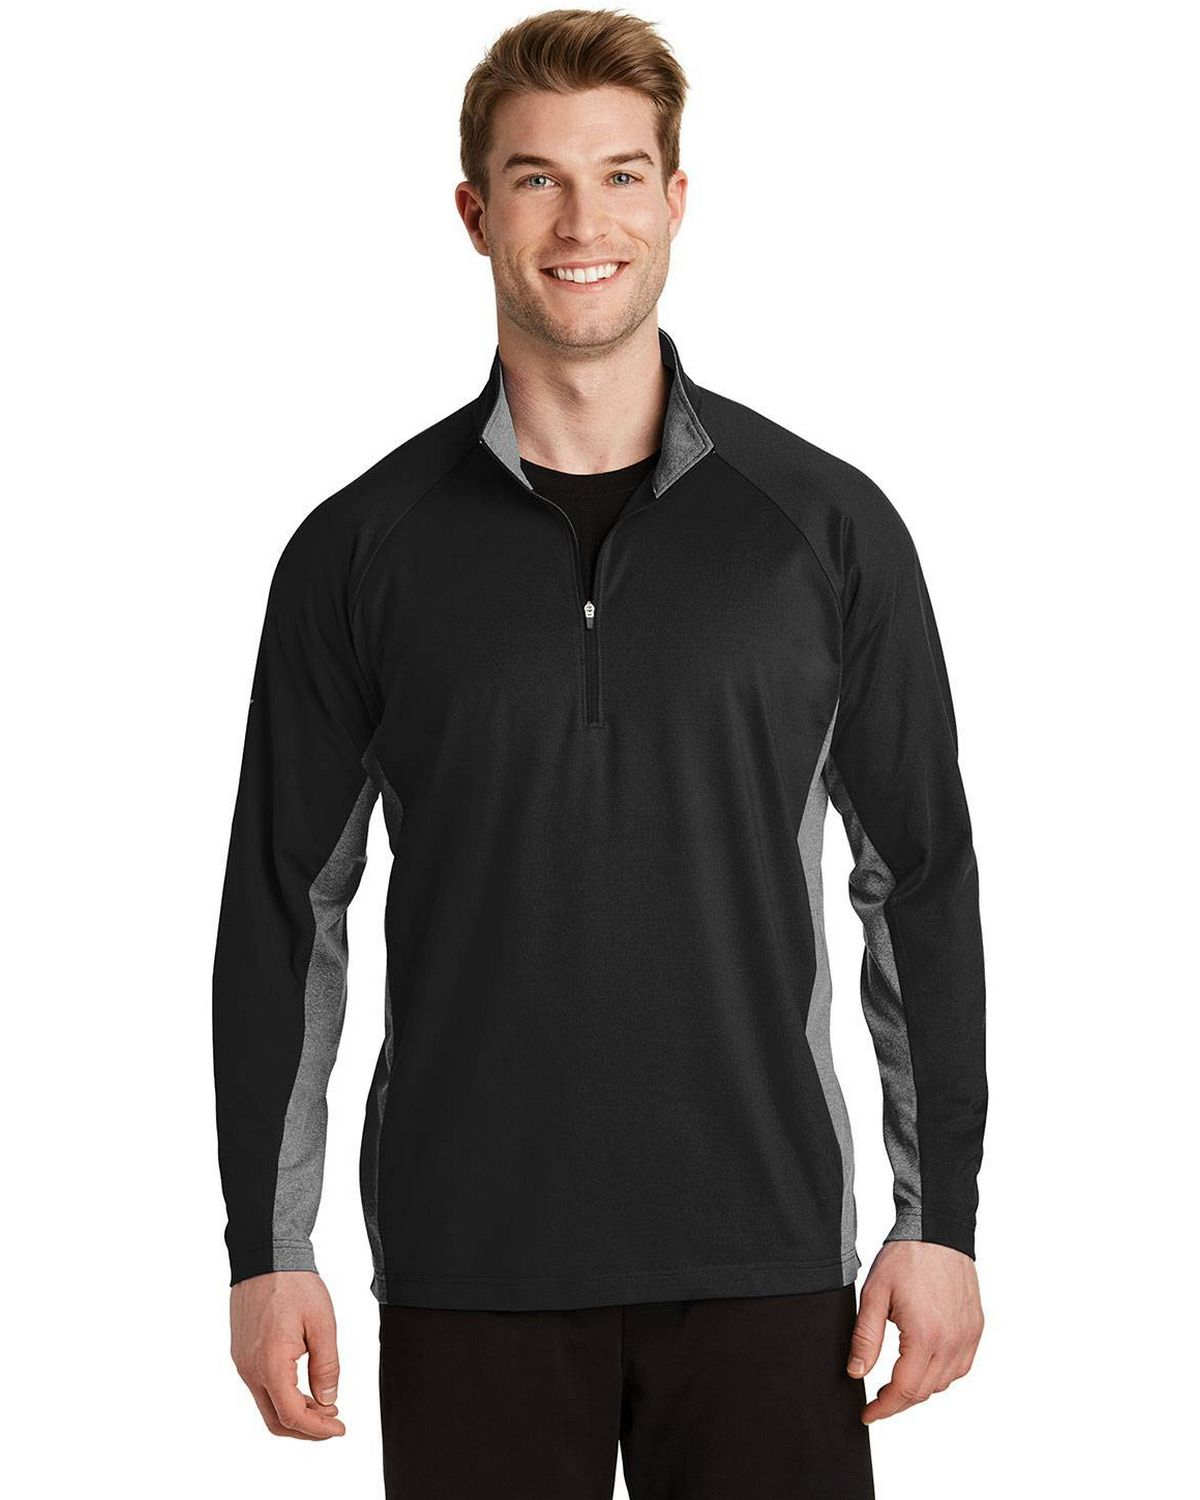 Sport-Tek ST854 Mens 1/2 Zip Pullover - Black/ Charcoal Grey Heather - XS ST854